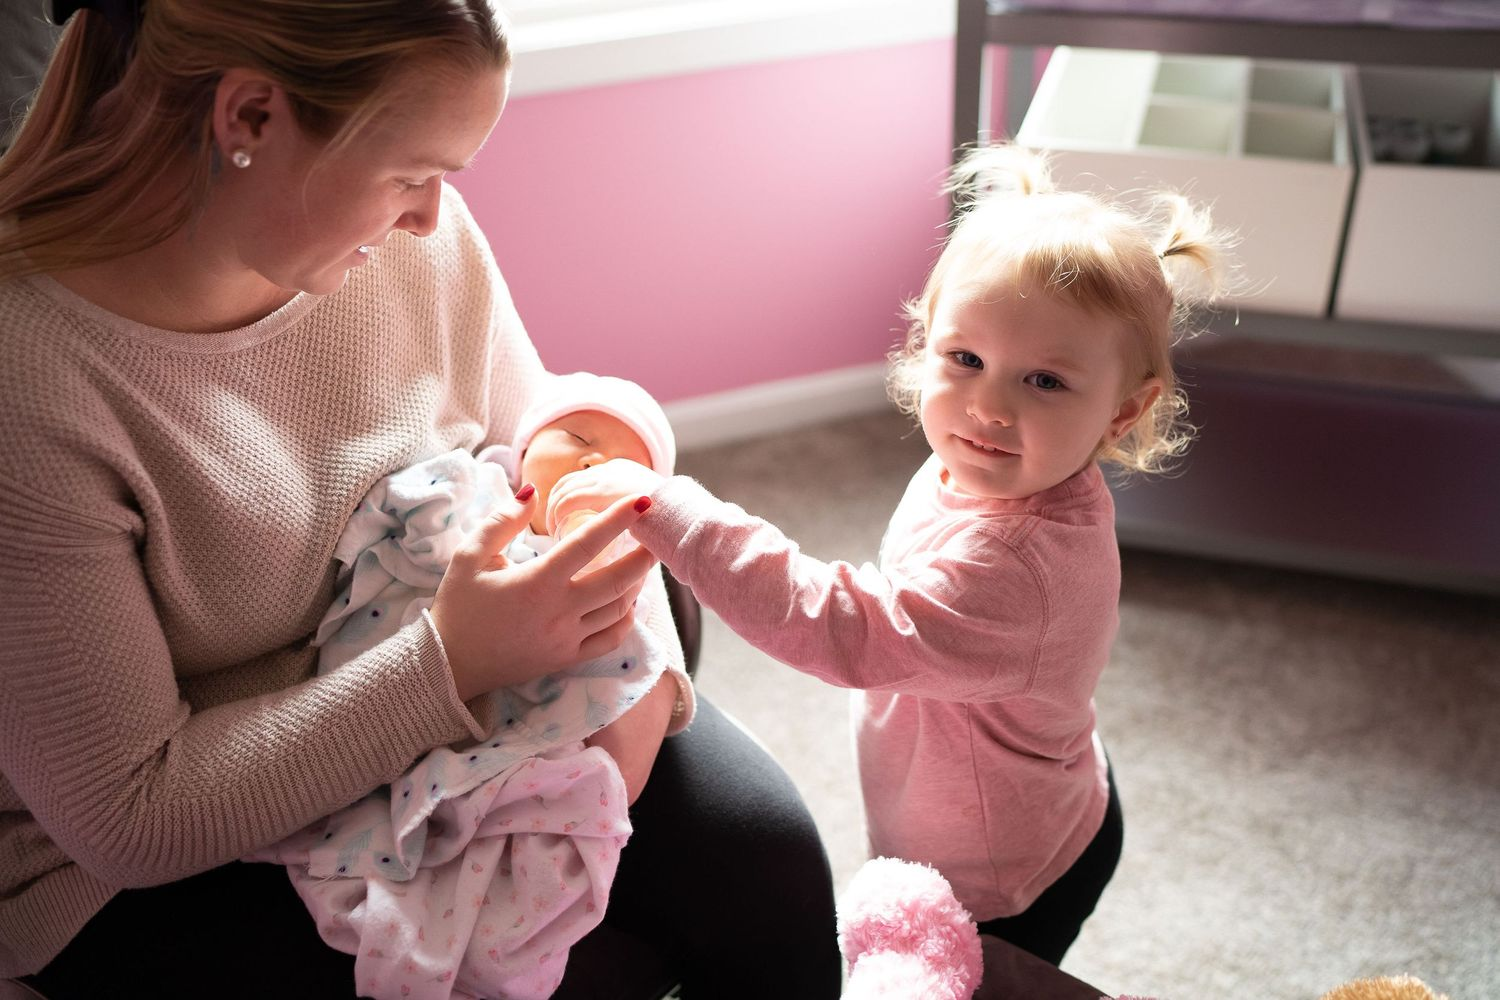 toddler helping feed her baby sister in sudbury ma home